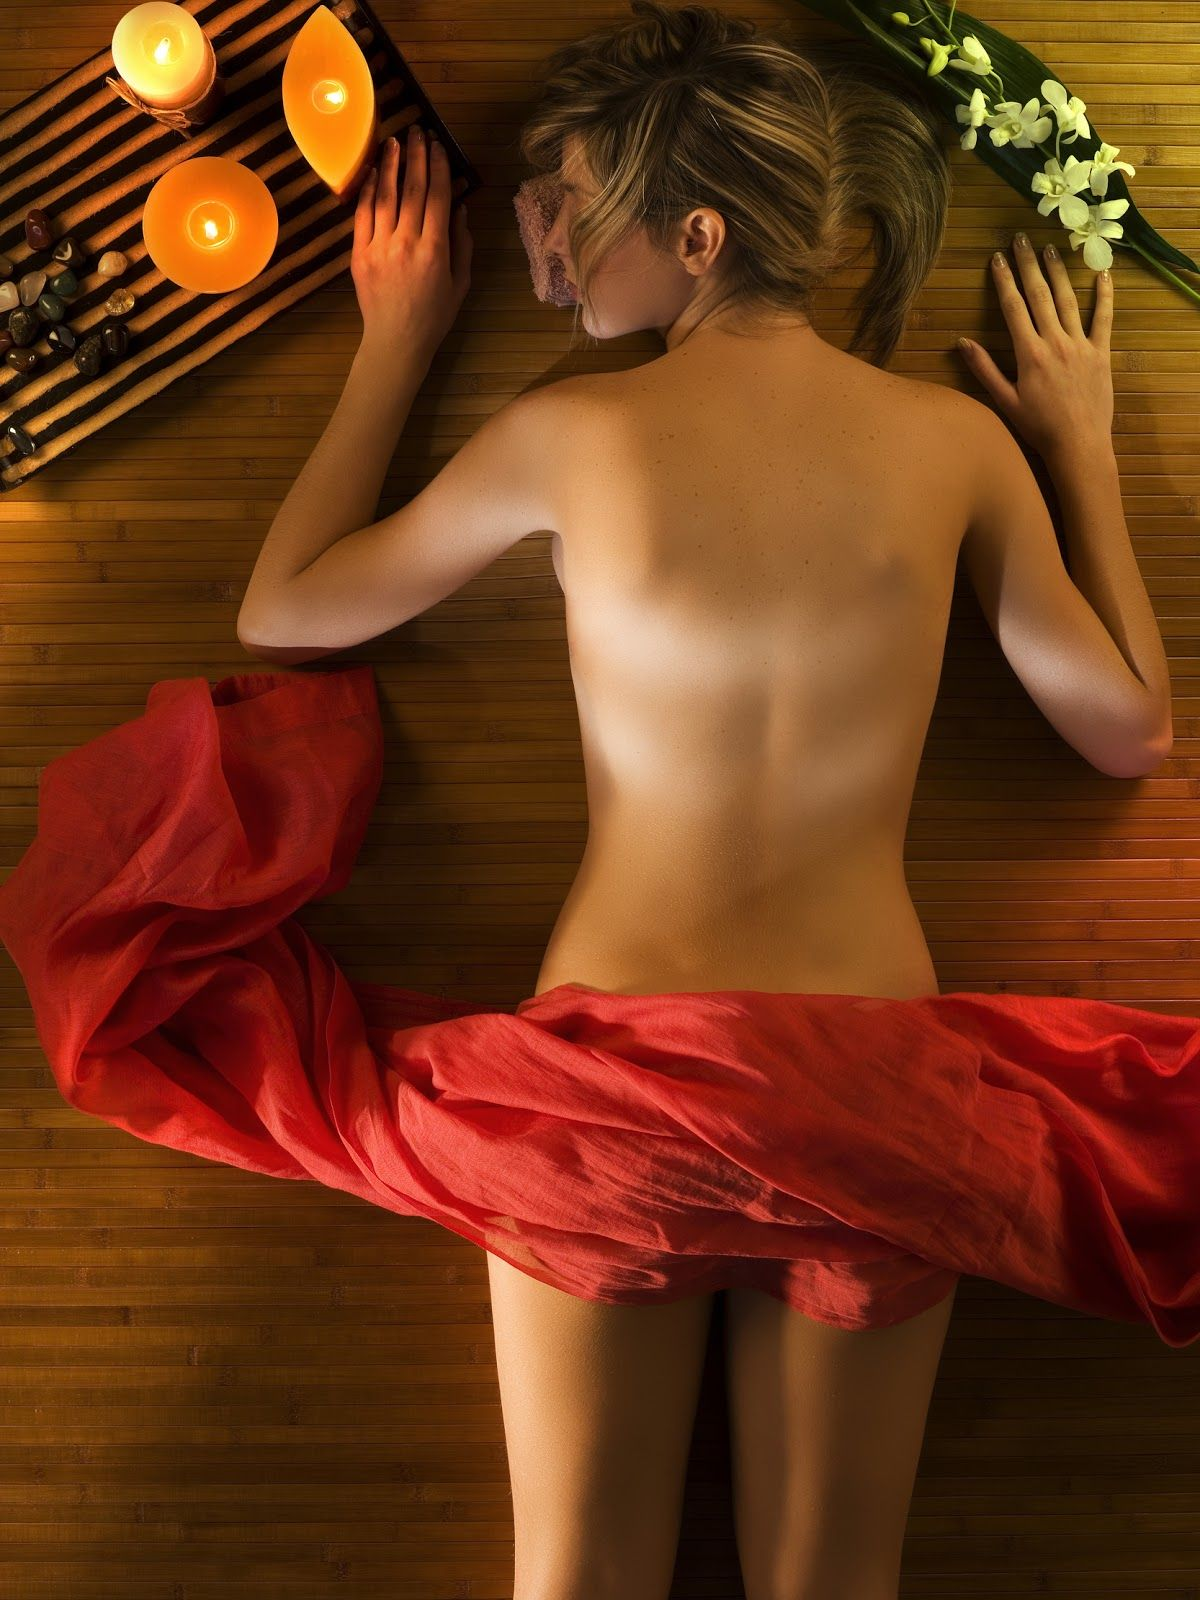 HOW TO GIVE YOUR SAPPHO LOVER A UNIQUE AND SENSUAL MASSAGE  http://spiritedsapphire